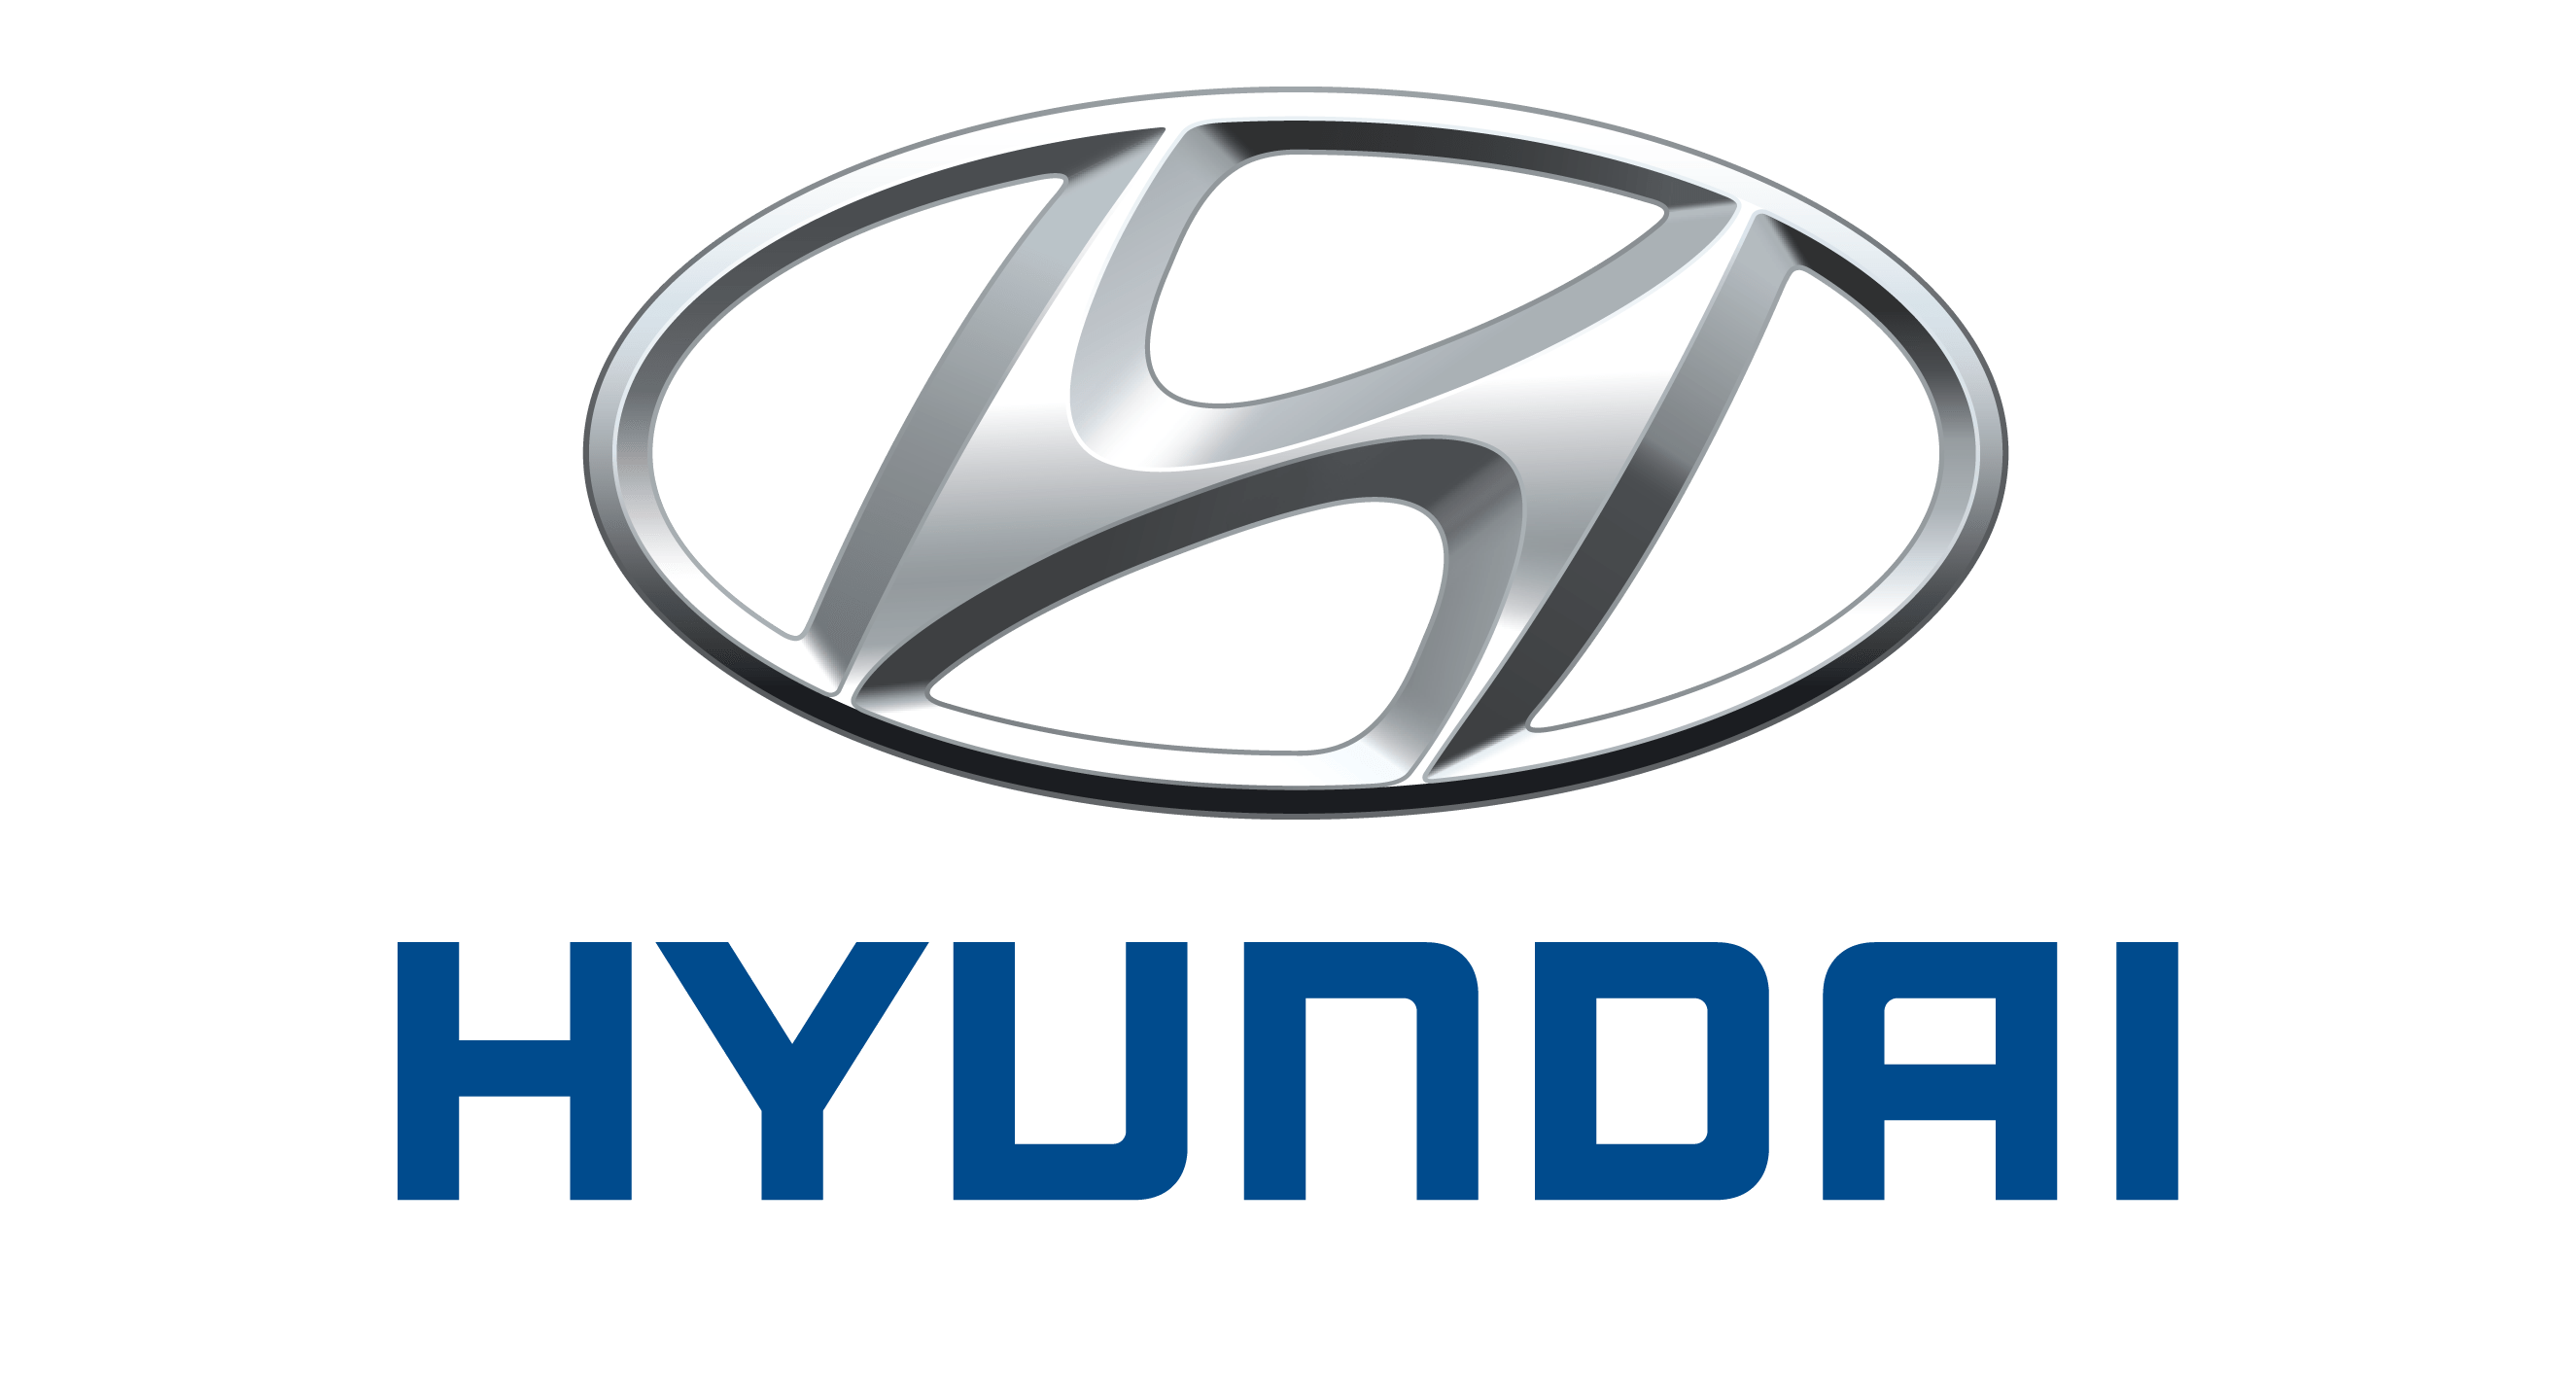 Car logo png. Hyundai transparent stickpng